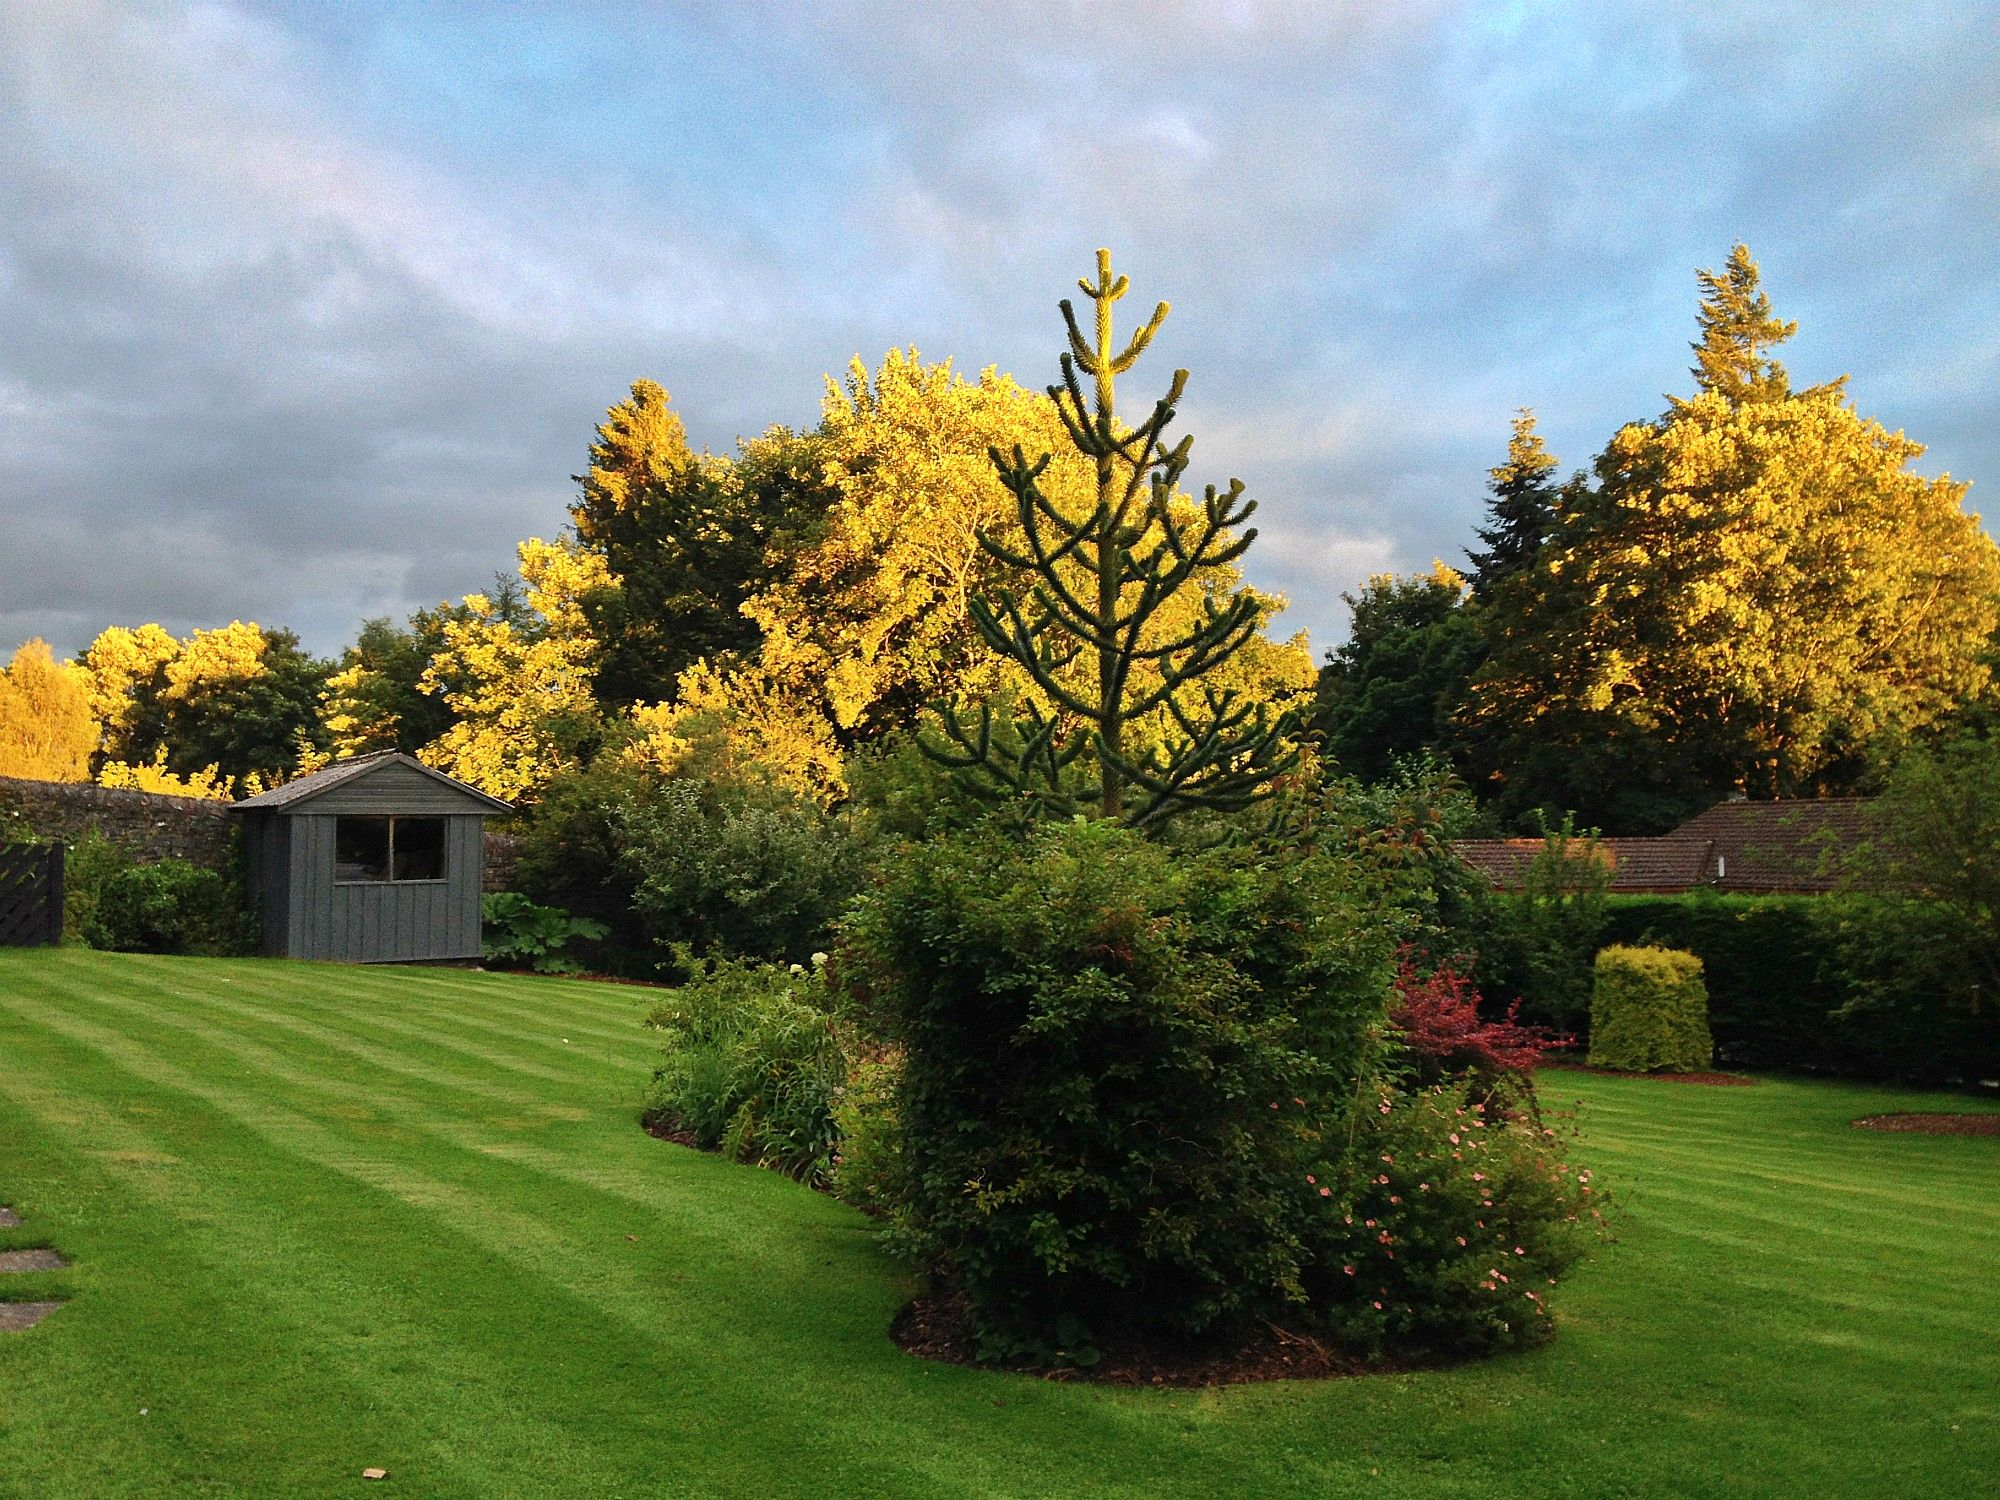 Some more unique evening sunshine shining down on the Craigatin garden Pitlochry last night!